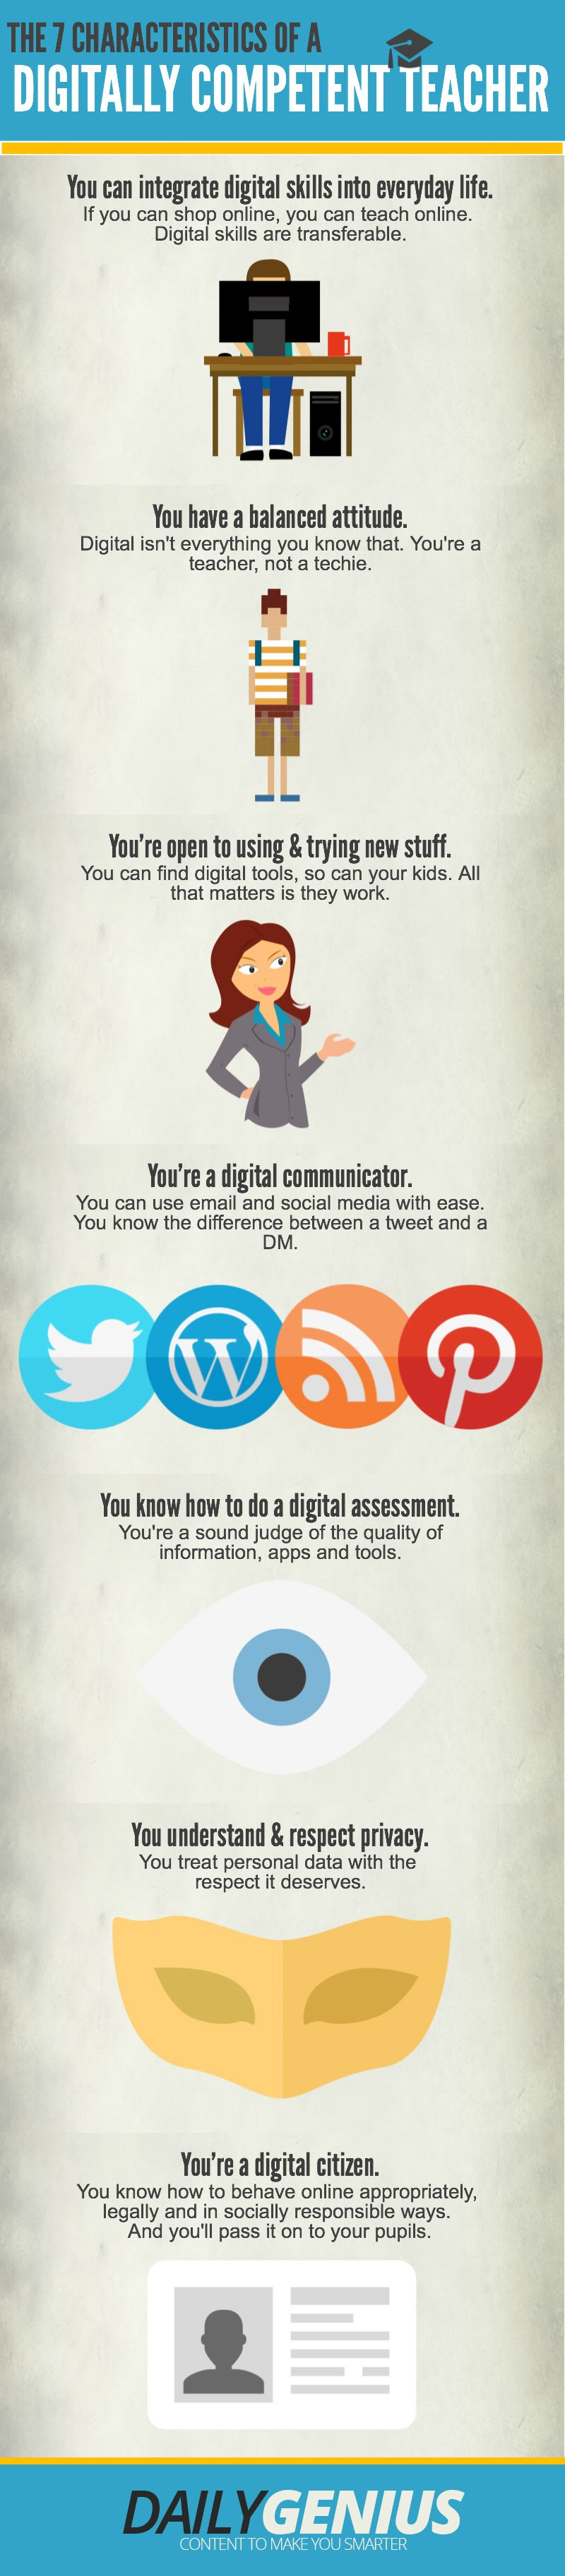 The-Characteristics-of-a-Digitally-Competent-Teacher-Infographic